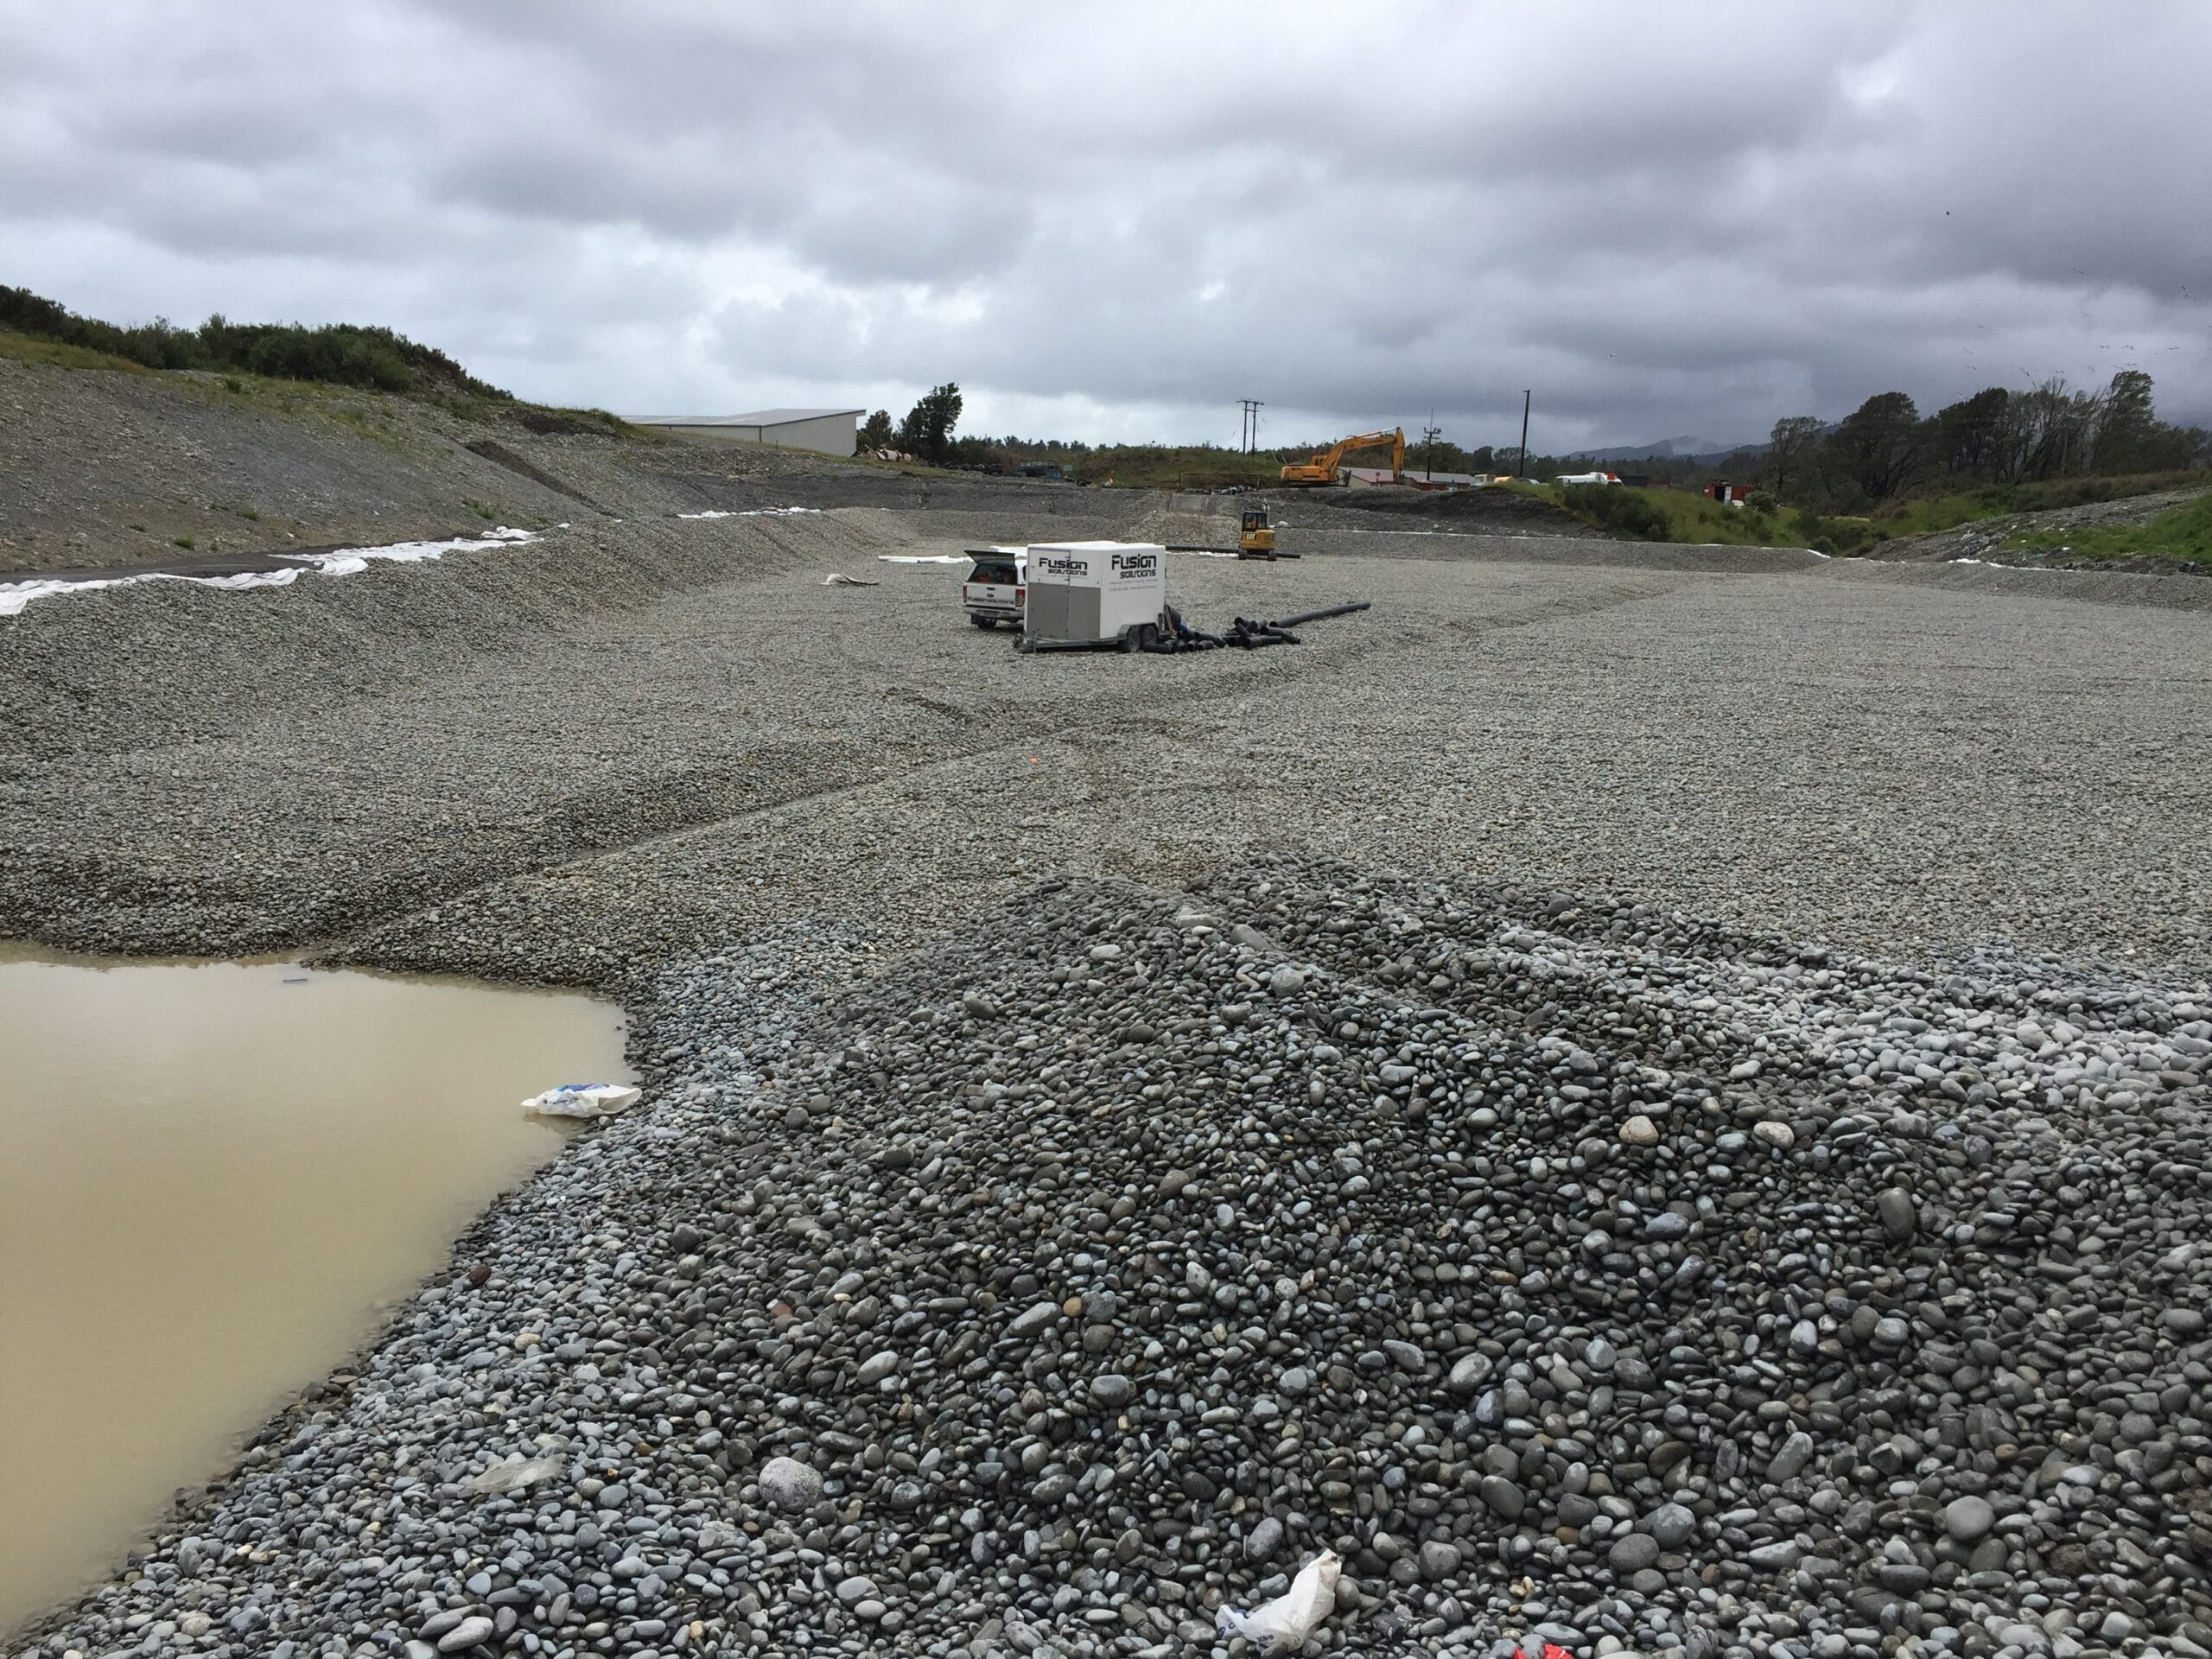 GrantHood_McLeans-Pit-Landfill-3a-2